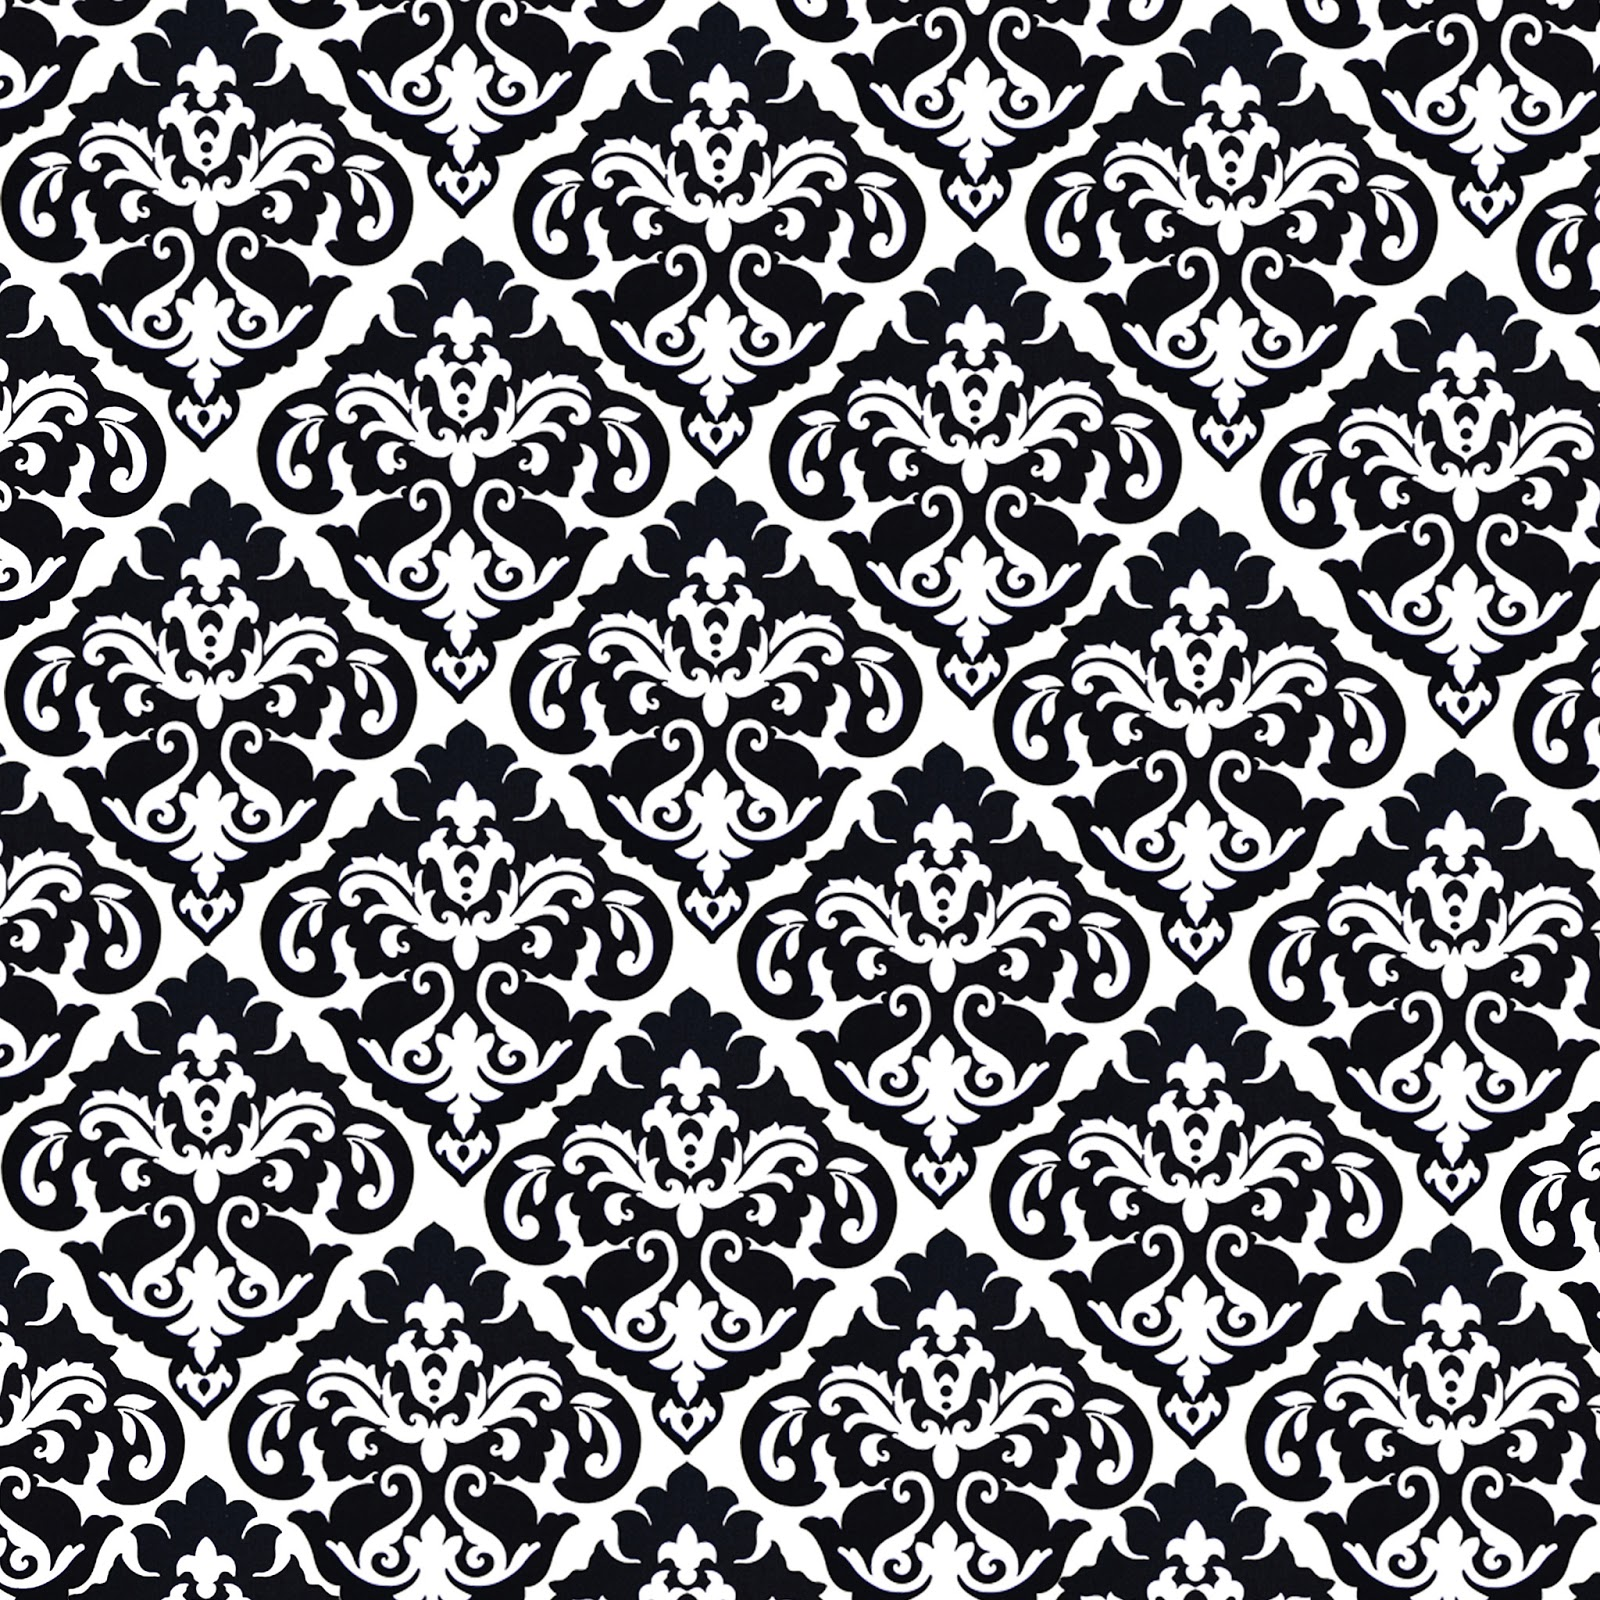 to Post Awsome Backgrounds Wallpapers Black And White Vintage Pattern 1600x1600